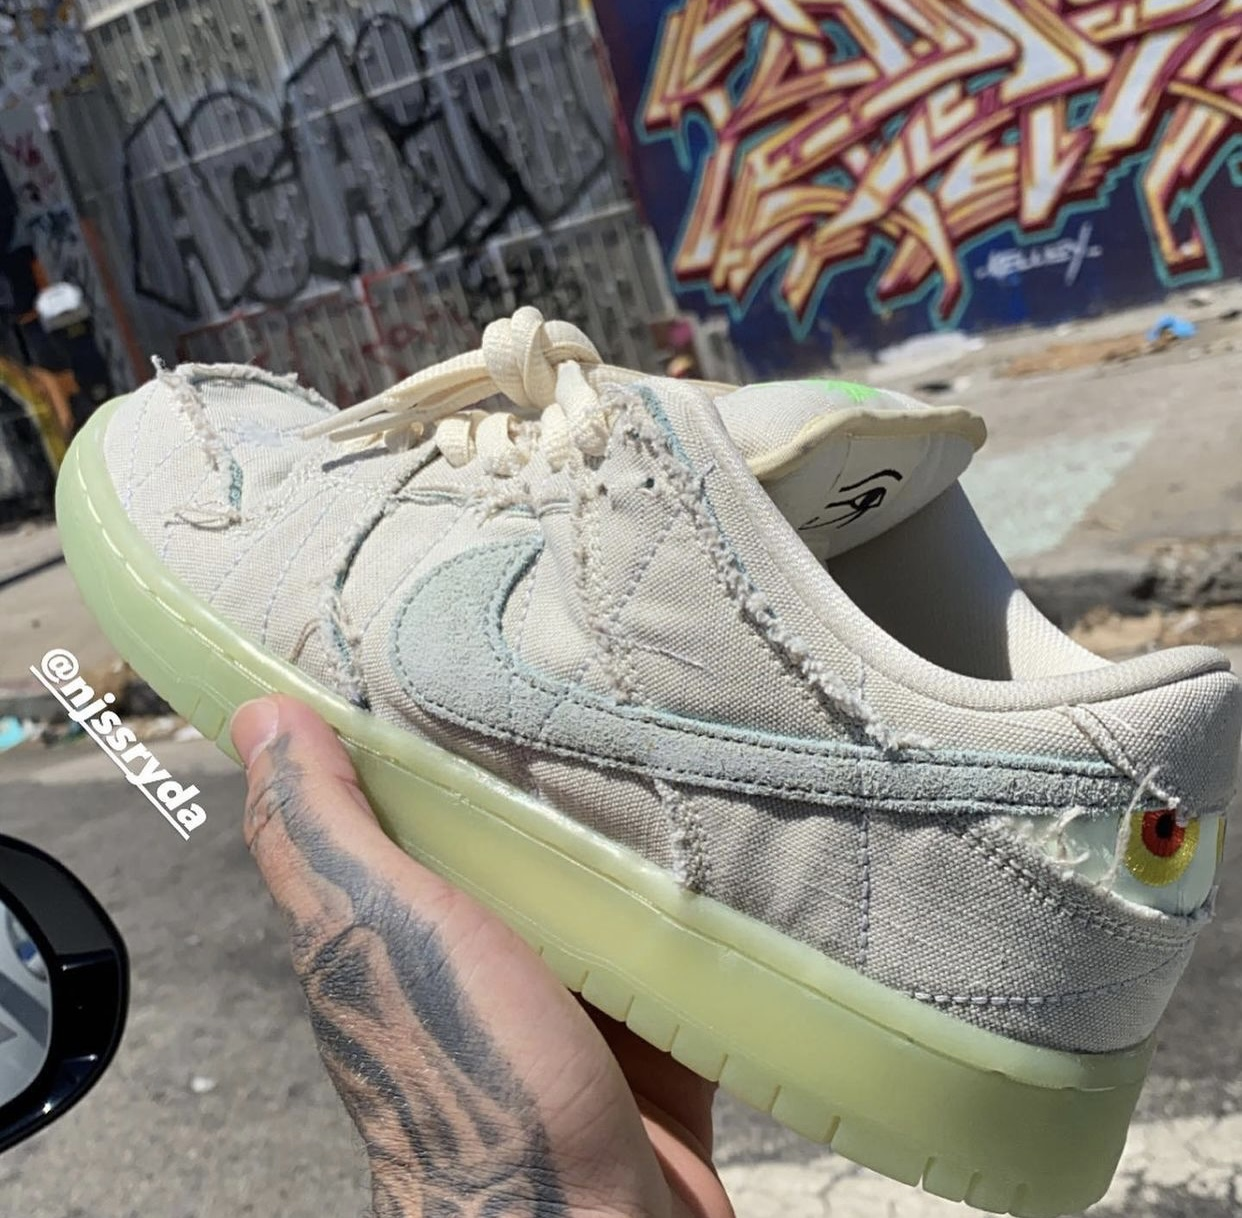 Whether you prefer the convenience of an electric can opener or you're perfectly fine with the simplicity of manual models, a can opener is an indispensable kitchen tool you can't live without unless you plan to never eat canned foods. Nike SB Dunk Low Mummy Halloween 2021 DM0774-111 Release Date - SBD